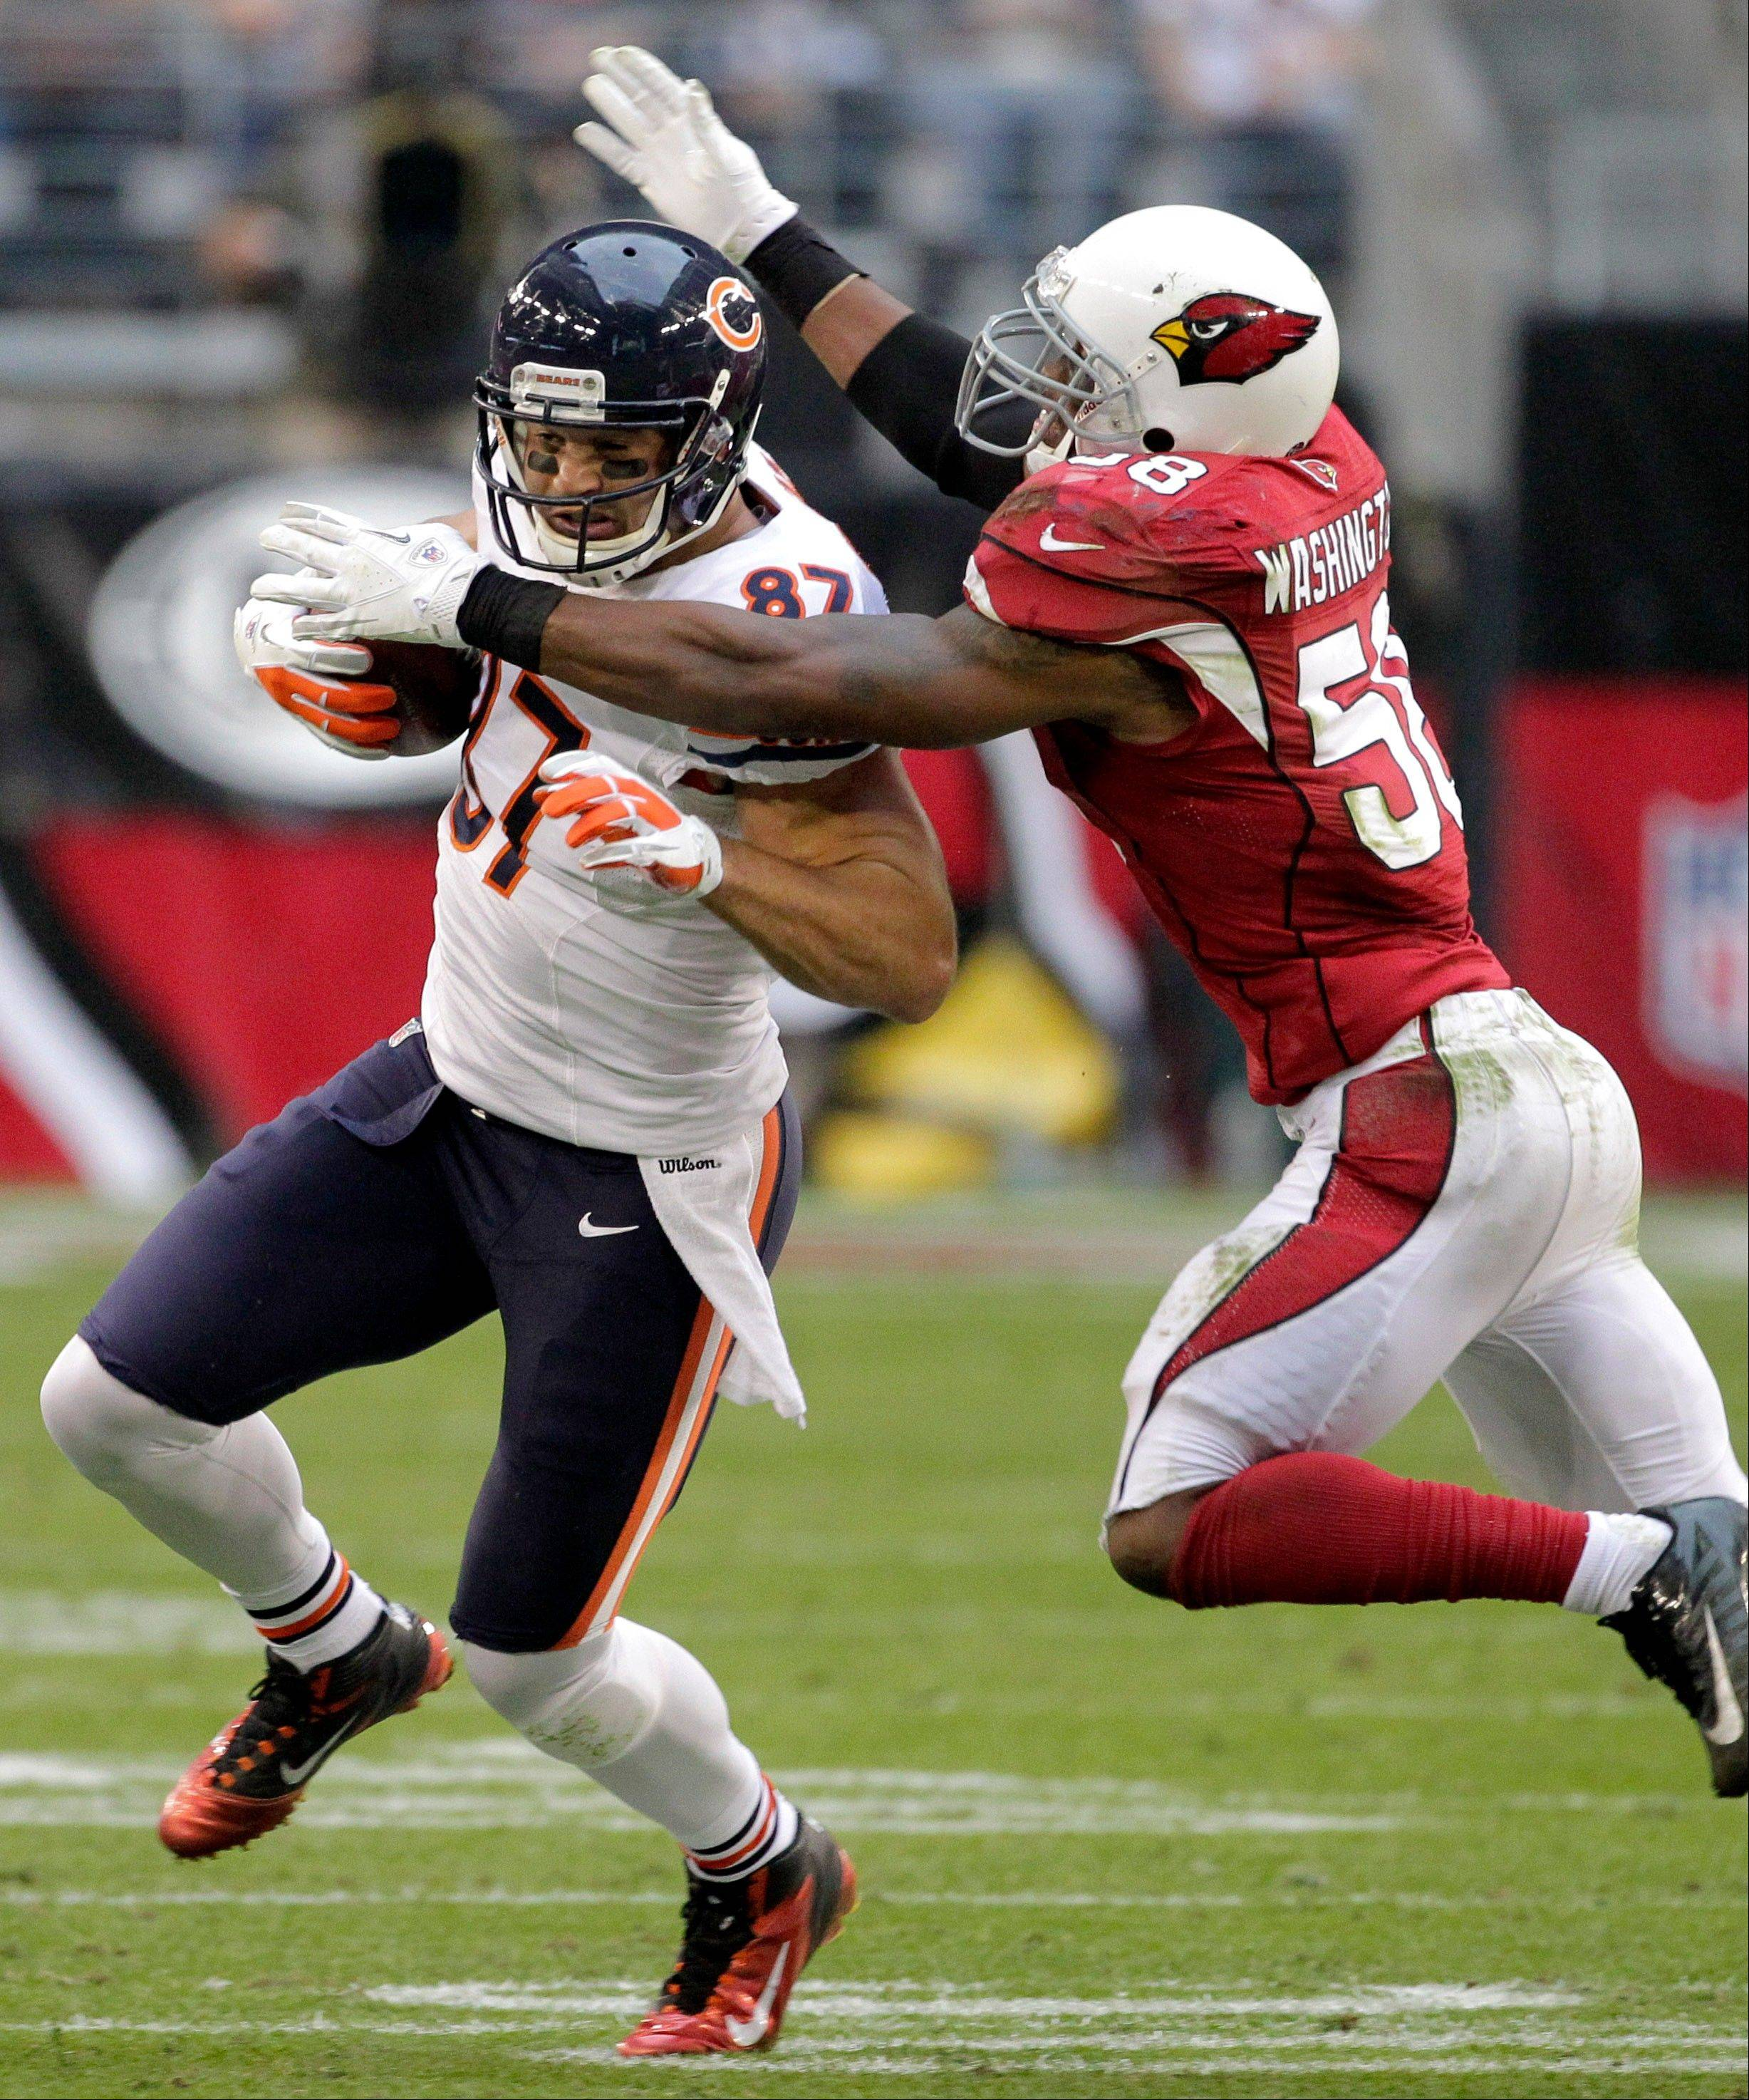 Arizona Cardinals inside linebacker Daryl Washington tackles Chicago Bears tight end Kellen Davis during the second half